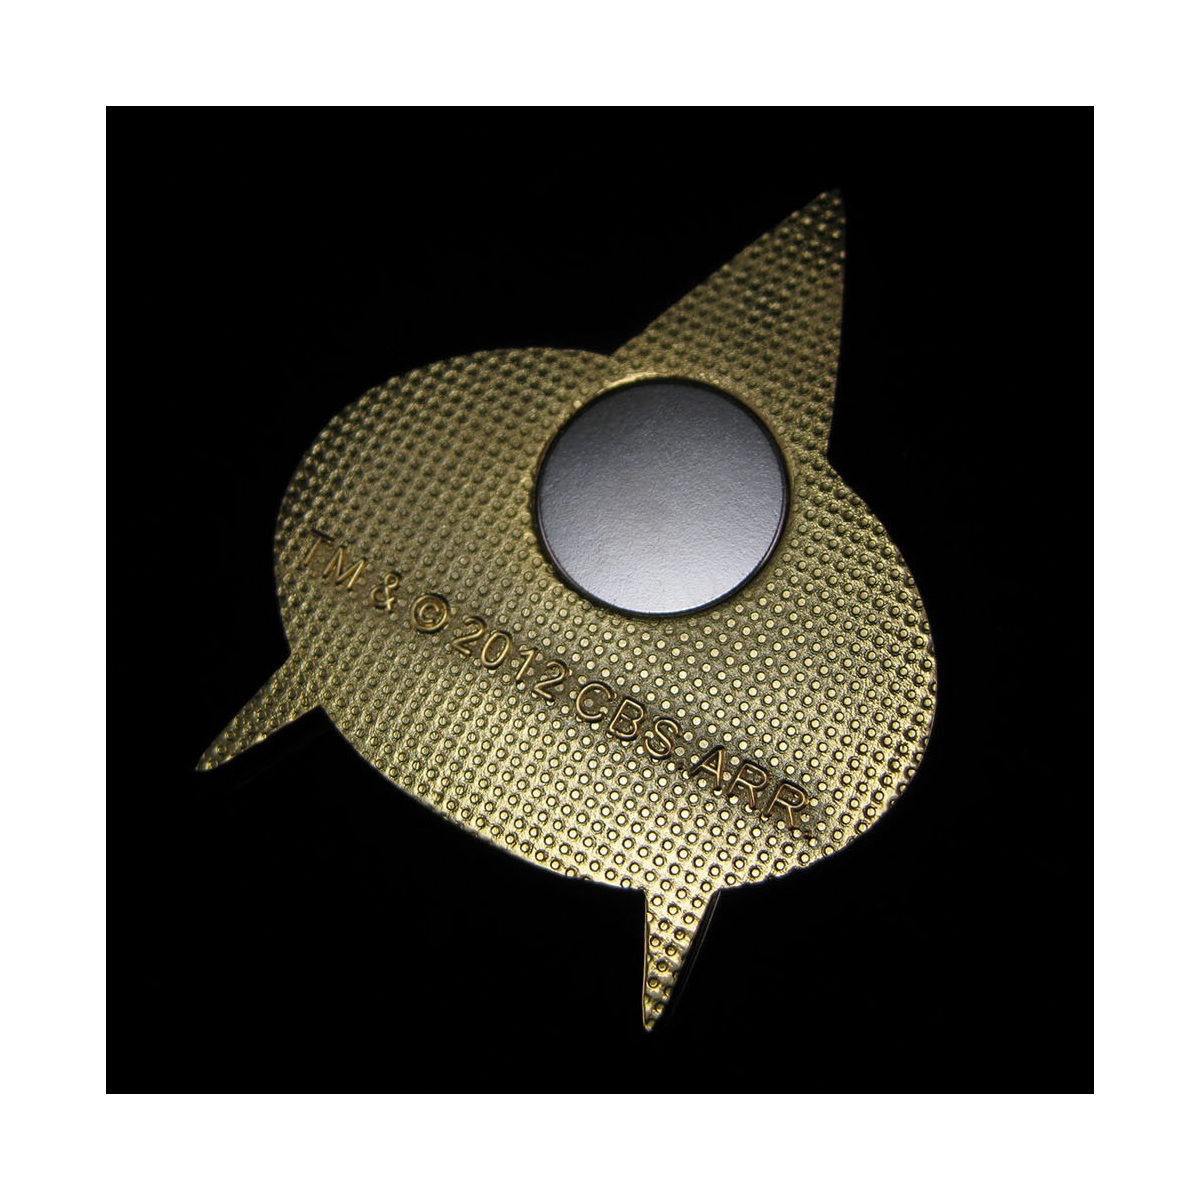 Star Trek The Next Generation Communicator Badge